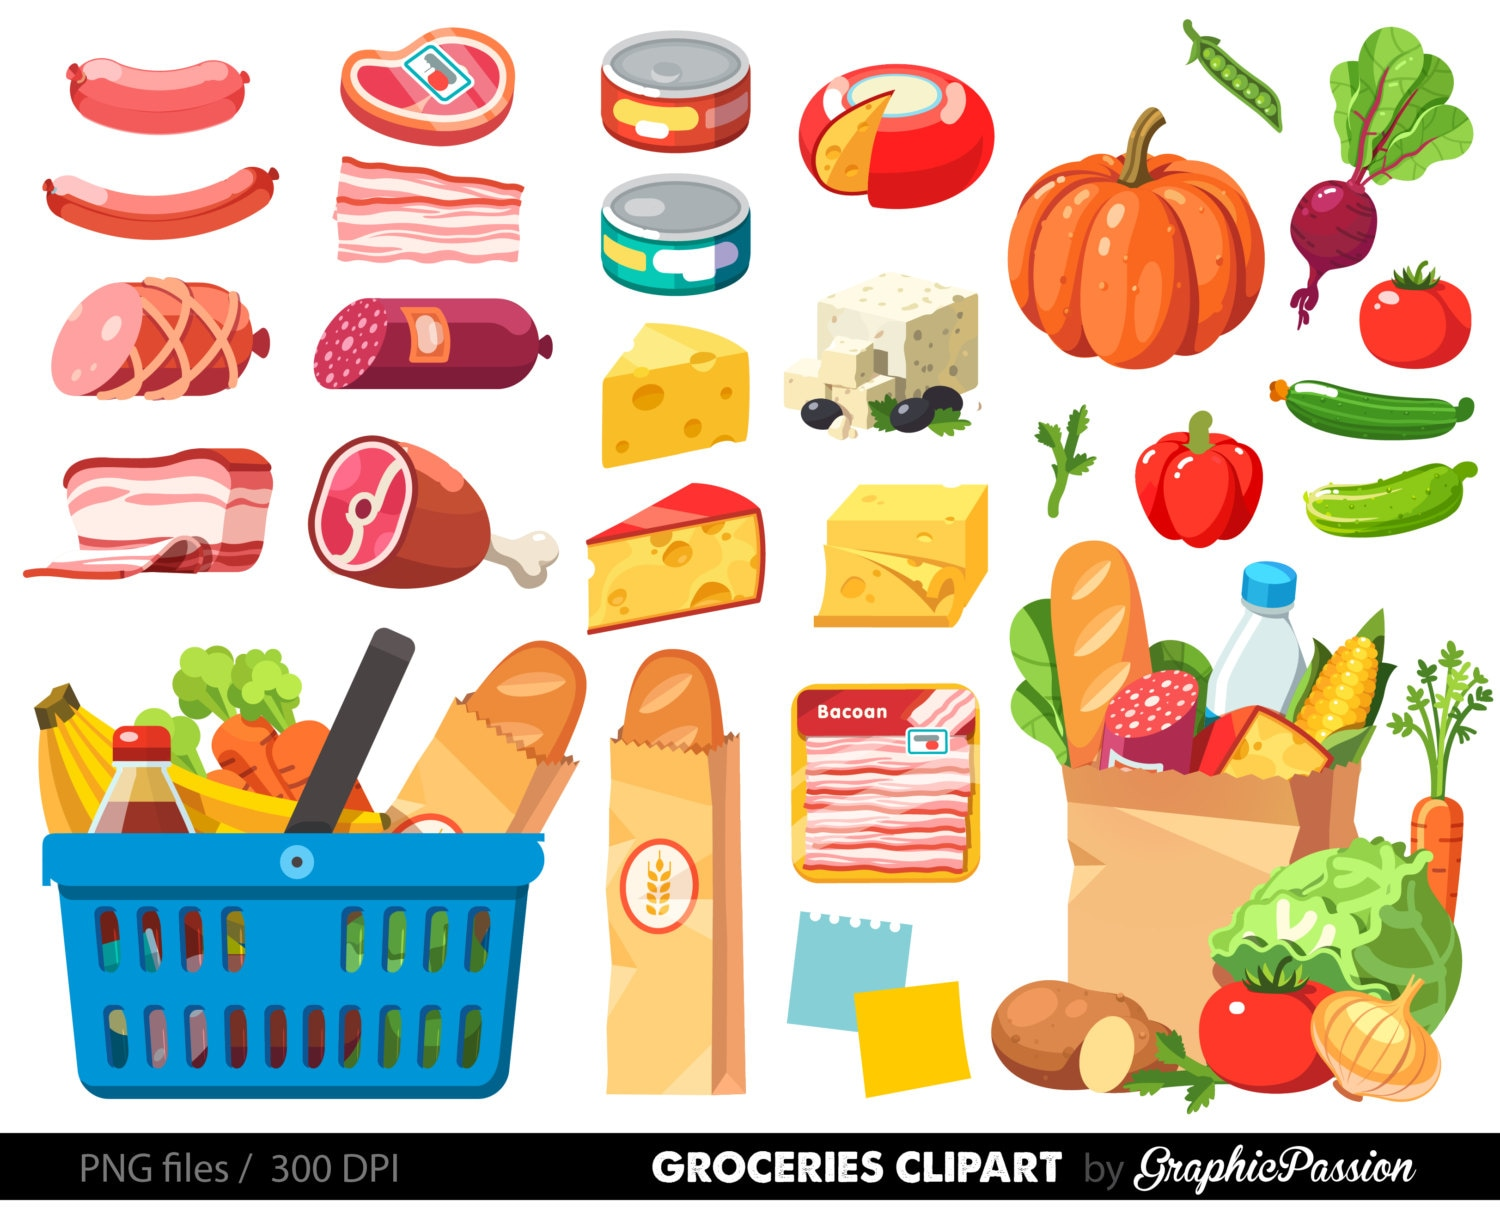 Grocery clipart shopping clipart food clipart dinner clipart for Shopping cuisine